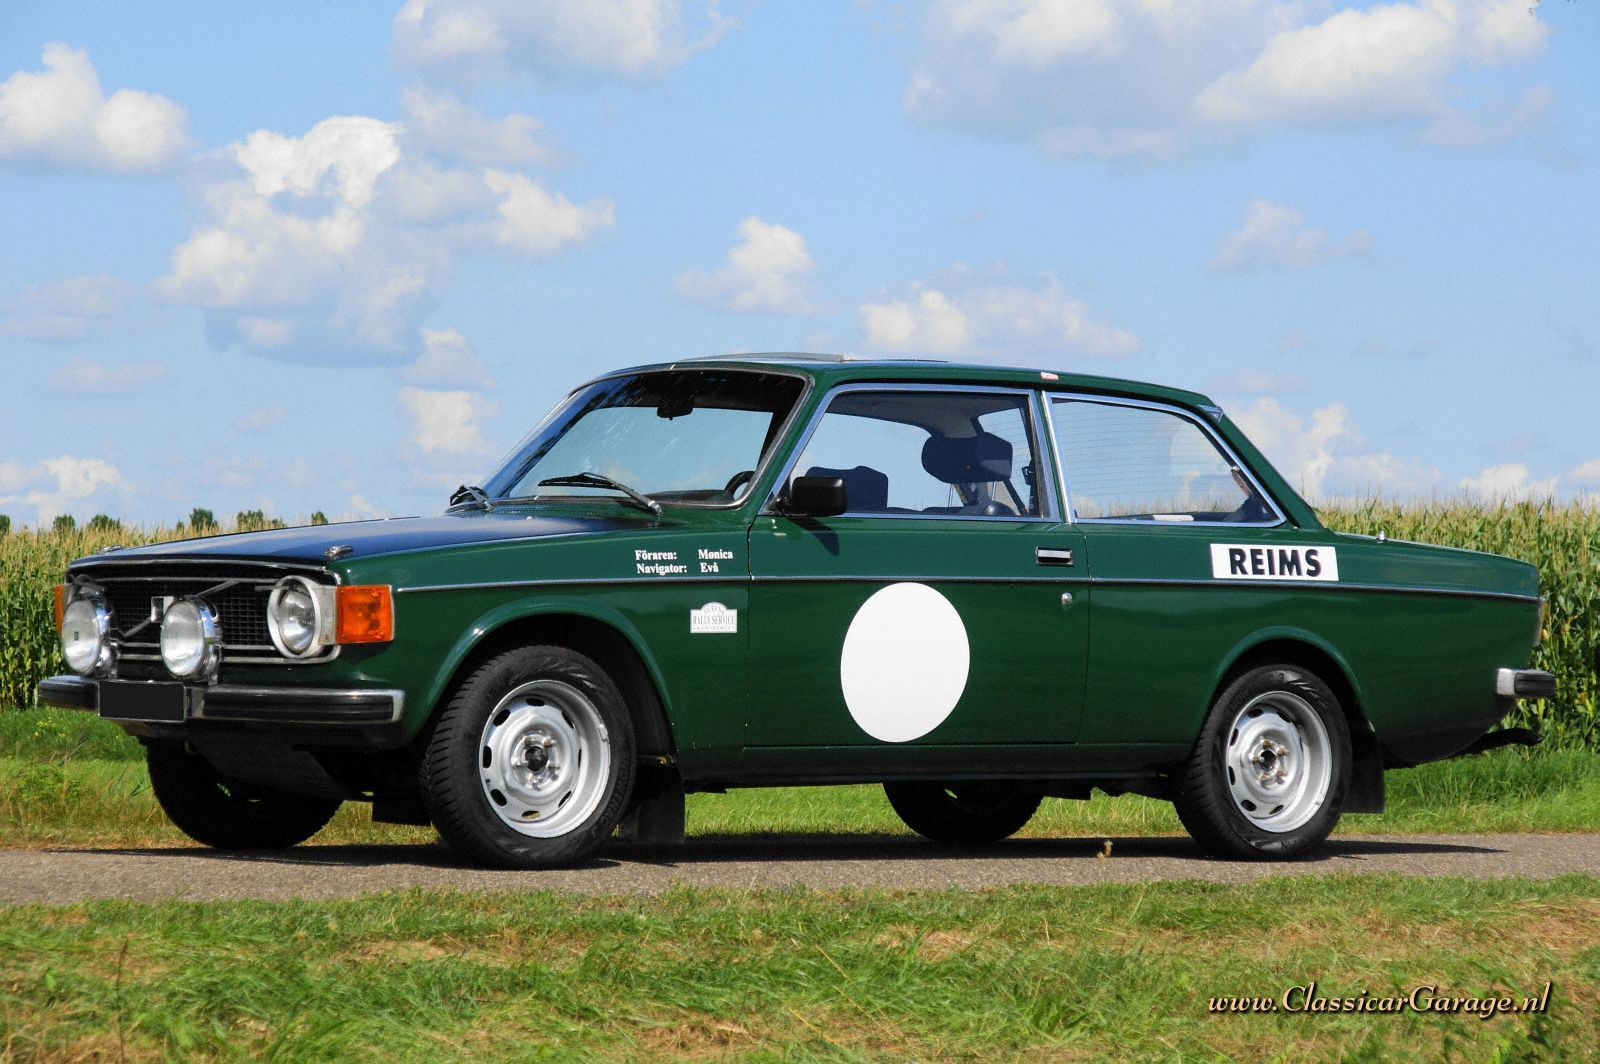 Volvo 142 S rally car, 1973 details